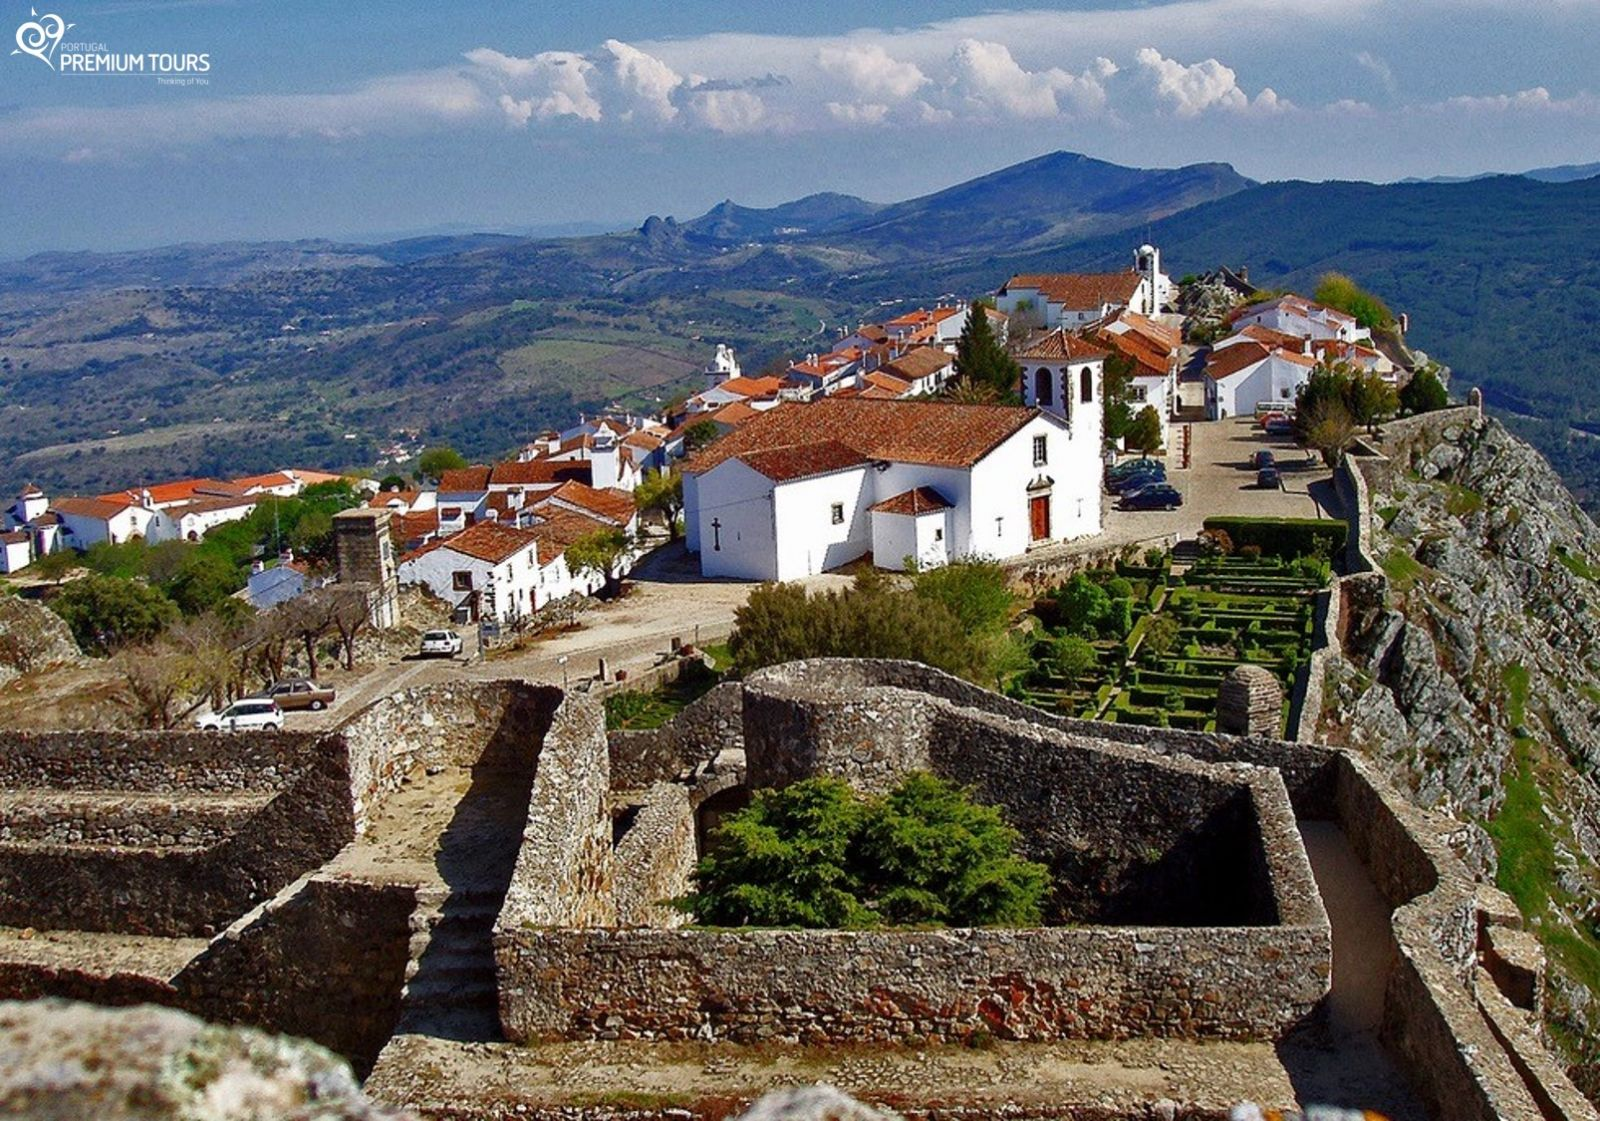 Spanish Home Design Discover Marv 227 O And Its Castle Portugal Premium Tours